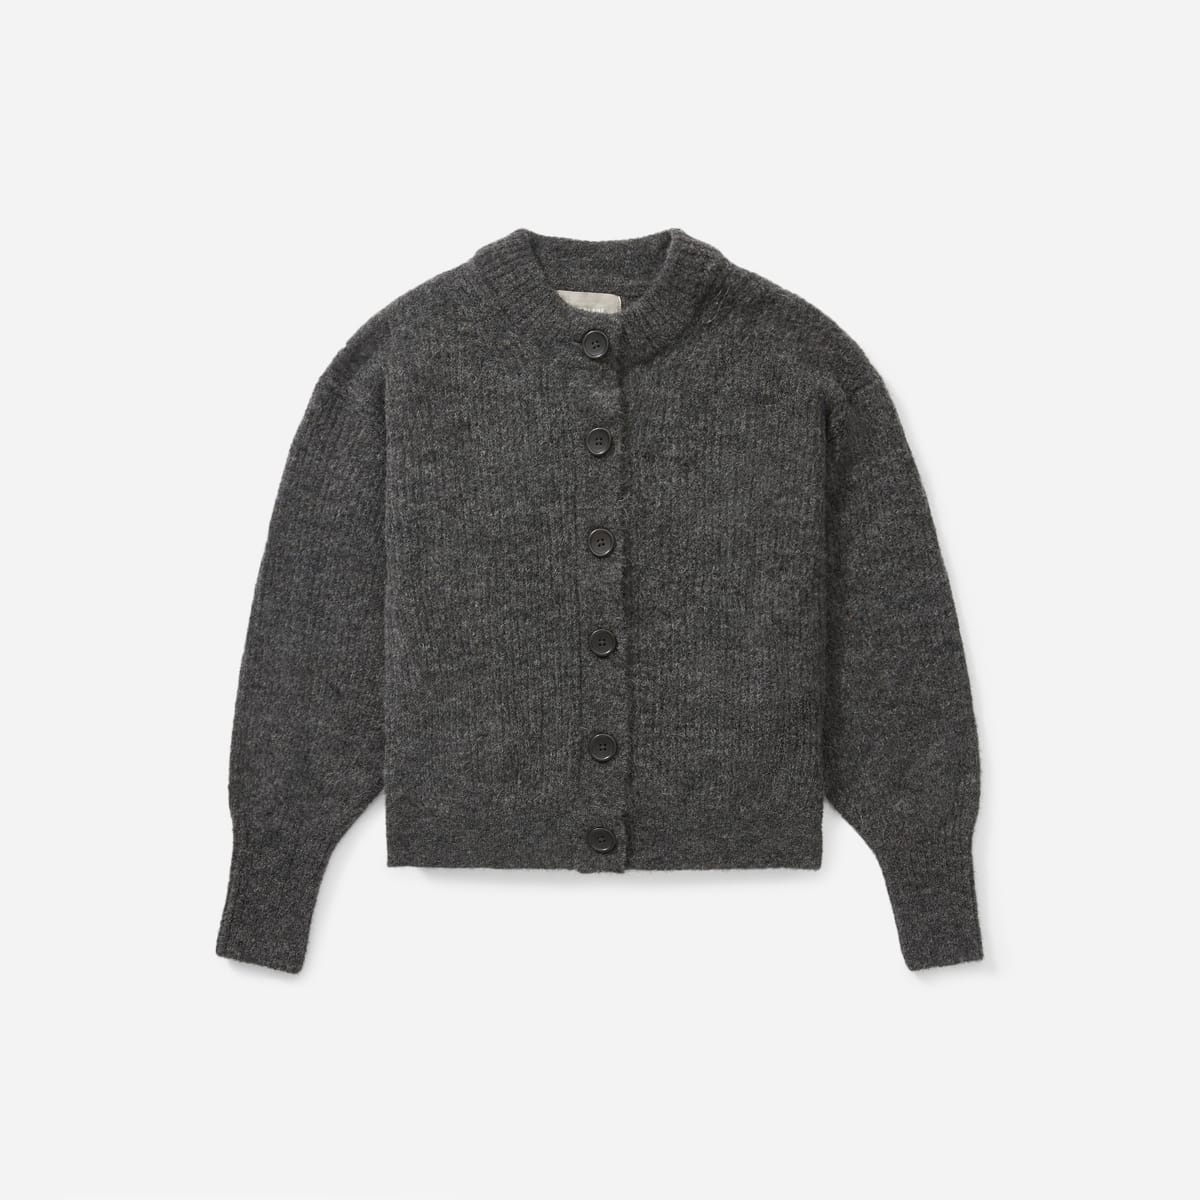 Everlane Alpaca Cropped Cardigan